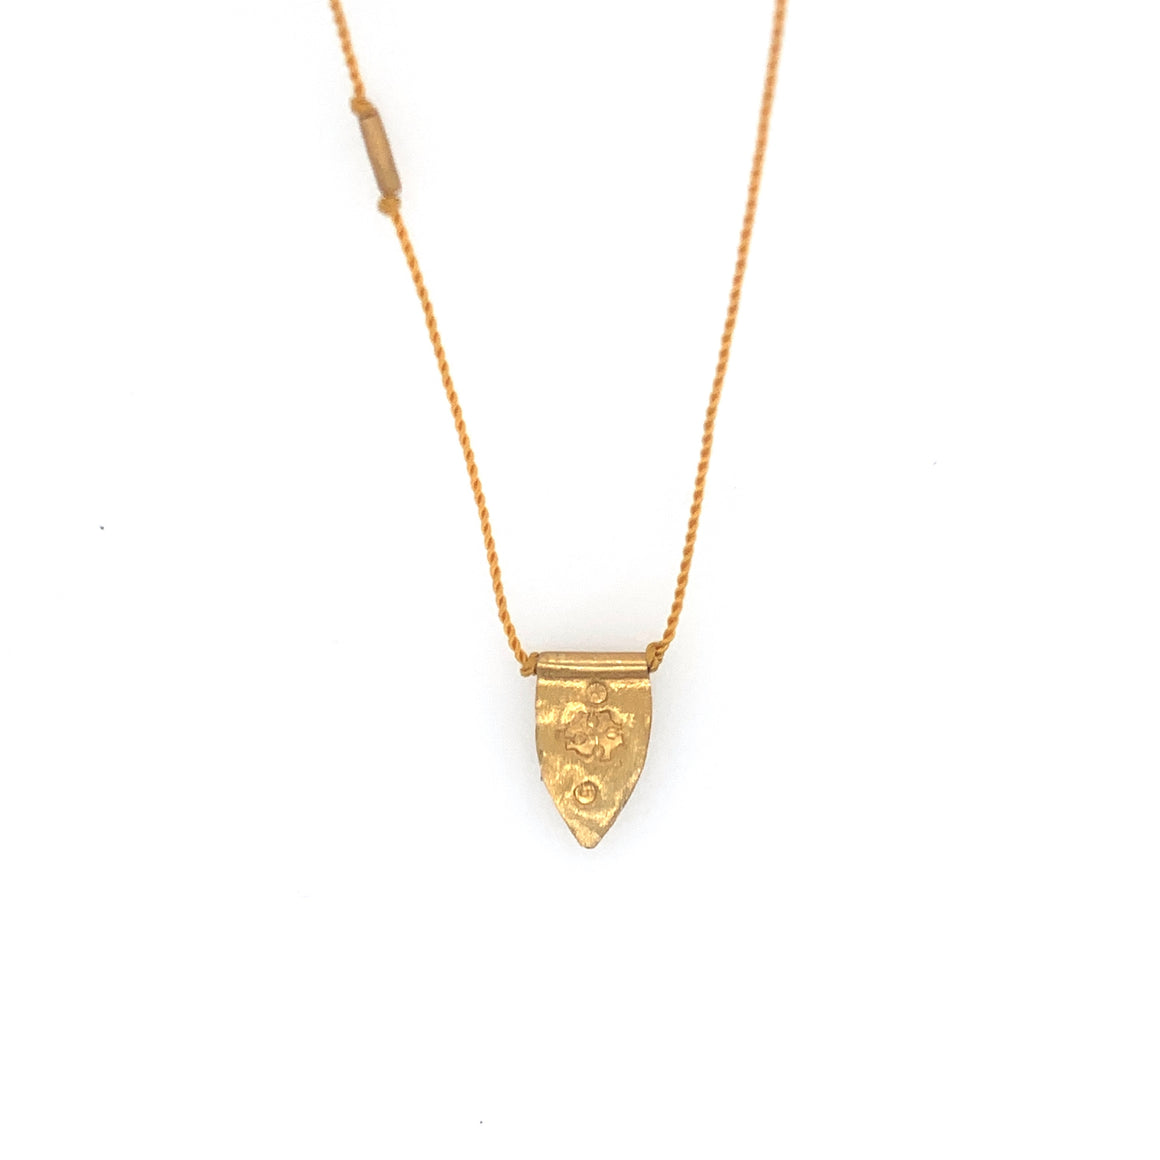 Pointed Shield Talisman Necklace - Mustard